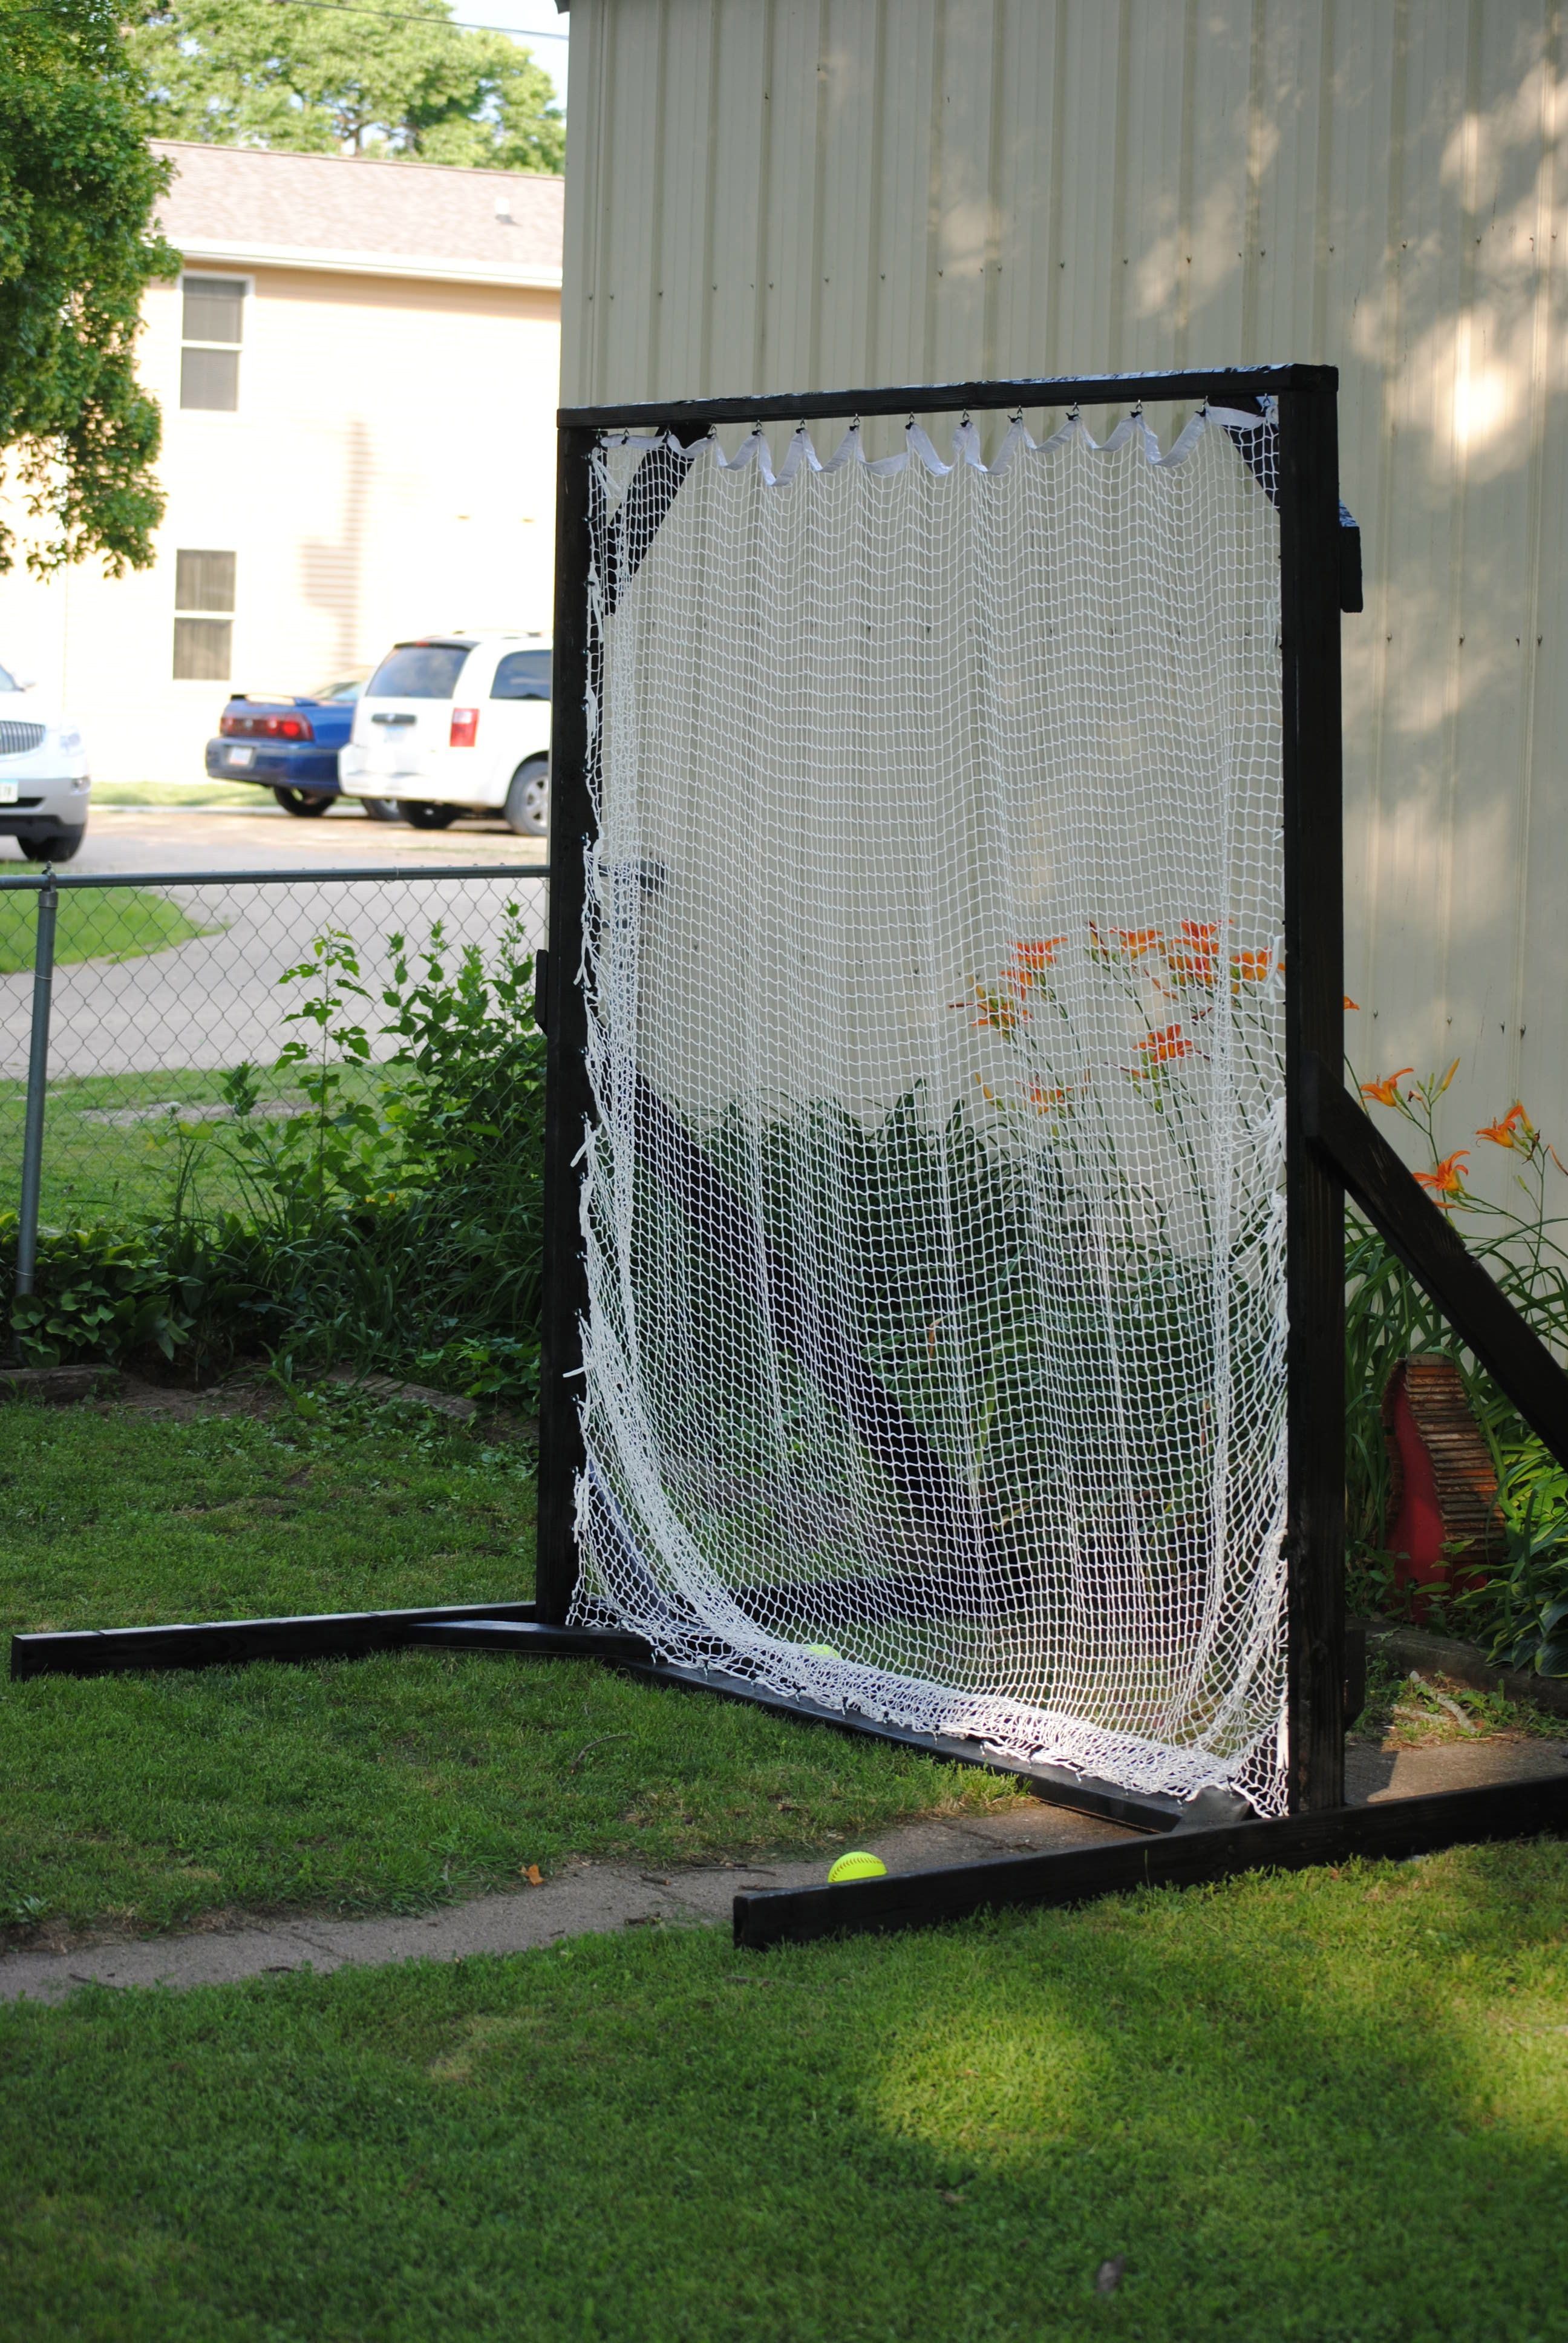 softball baseball net for hitting and learning to pitch